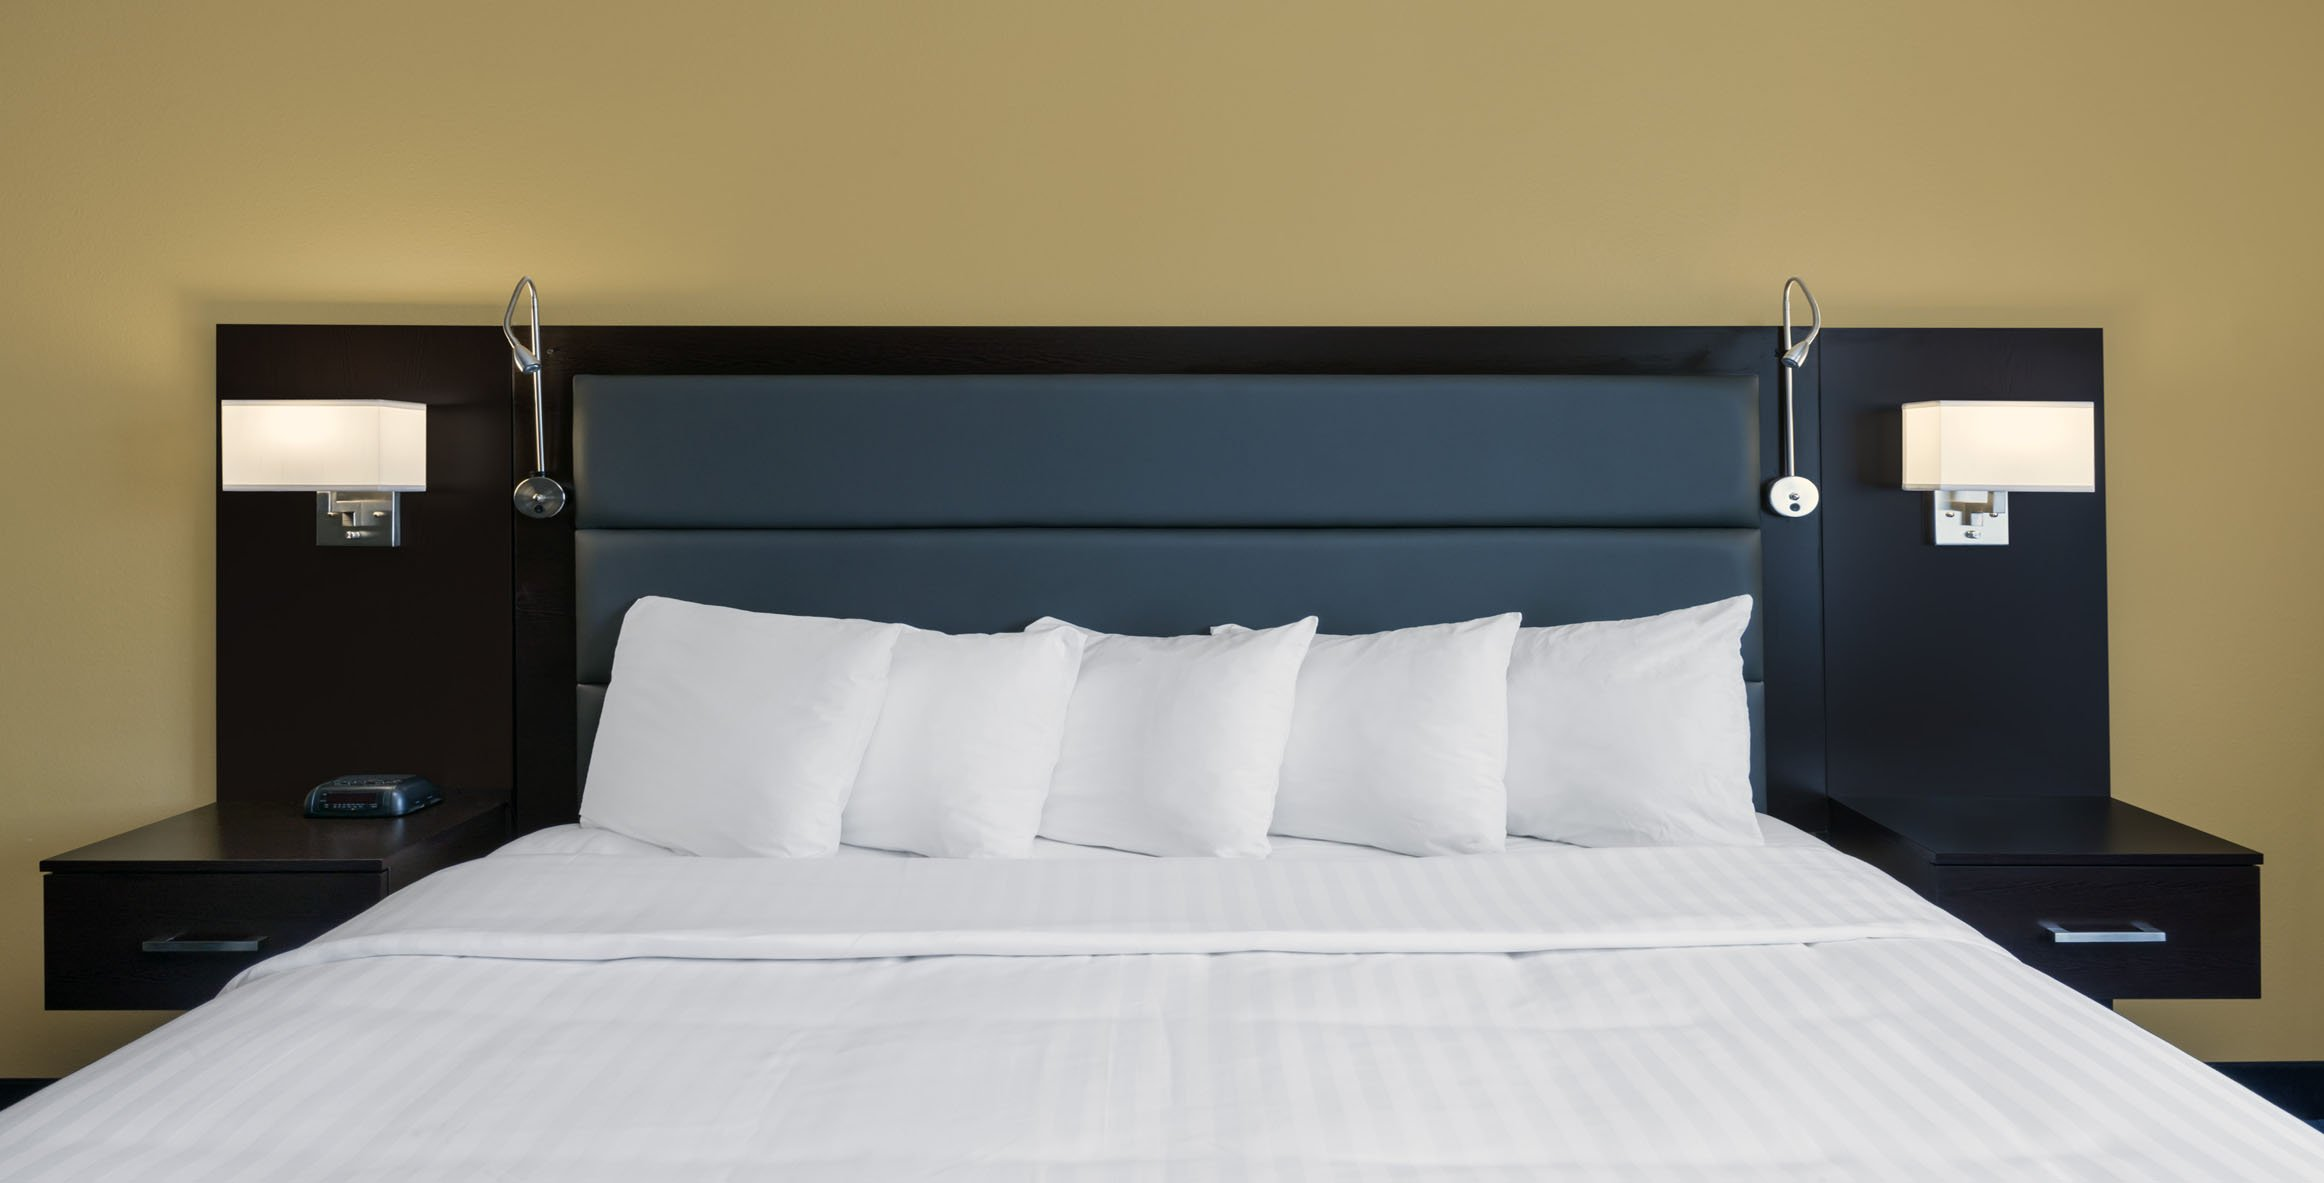 MODERN TOUCHES MAKES YOUR STAY WITH US STRESS-FREE